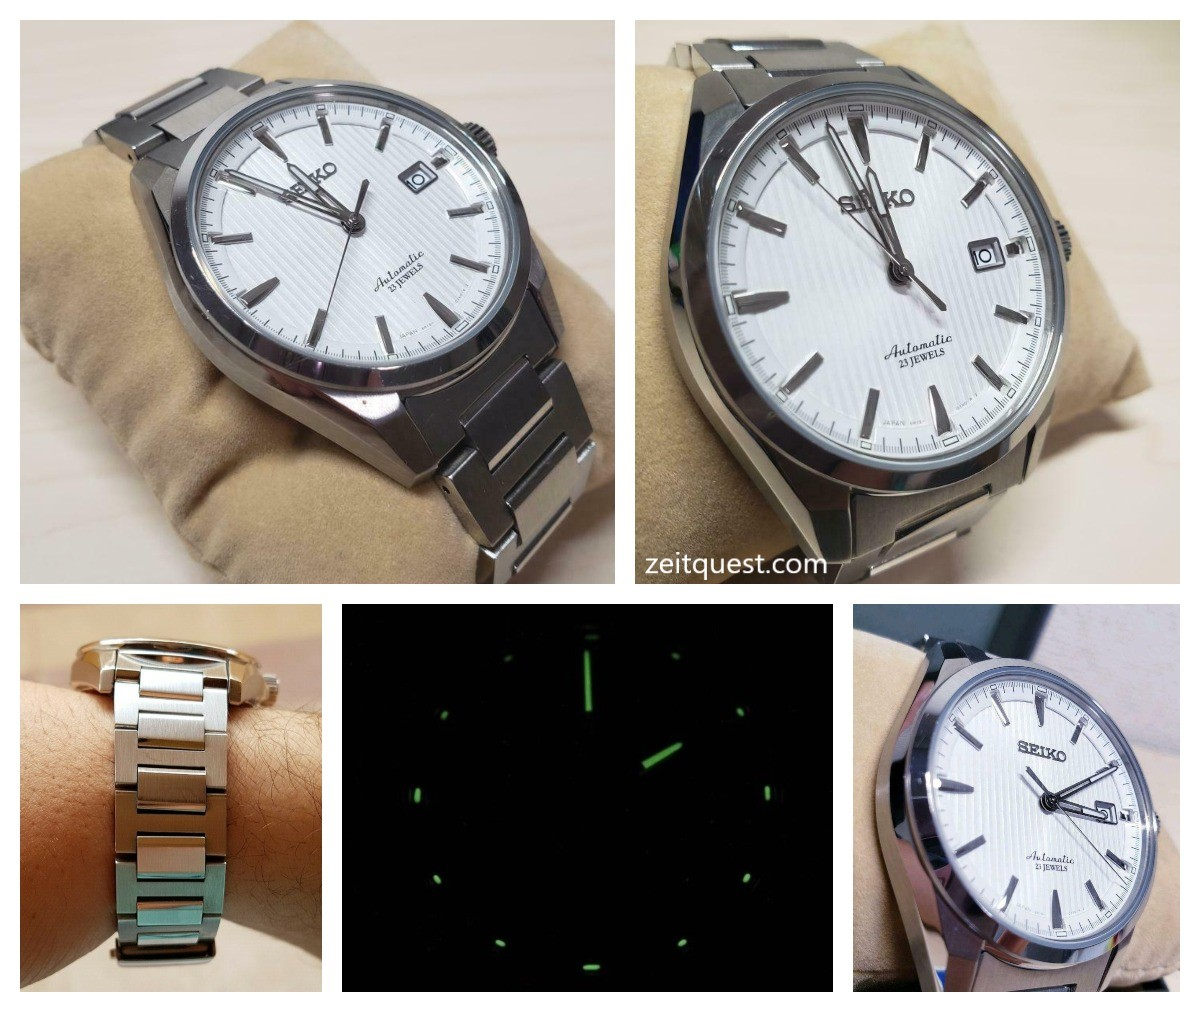 The Seiko SARX013. Available now on eBay.